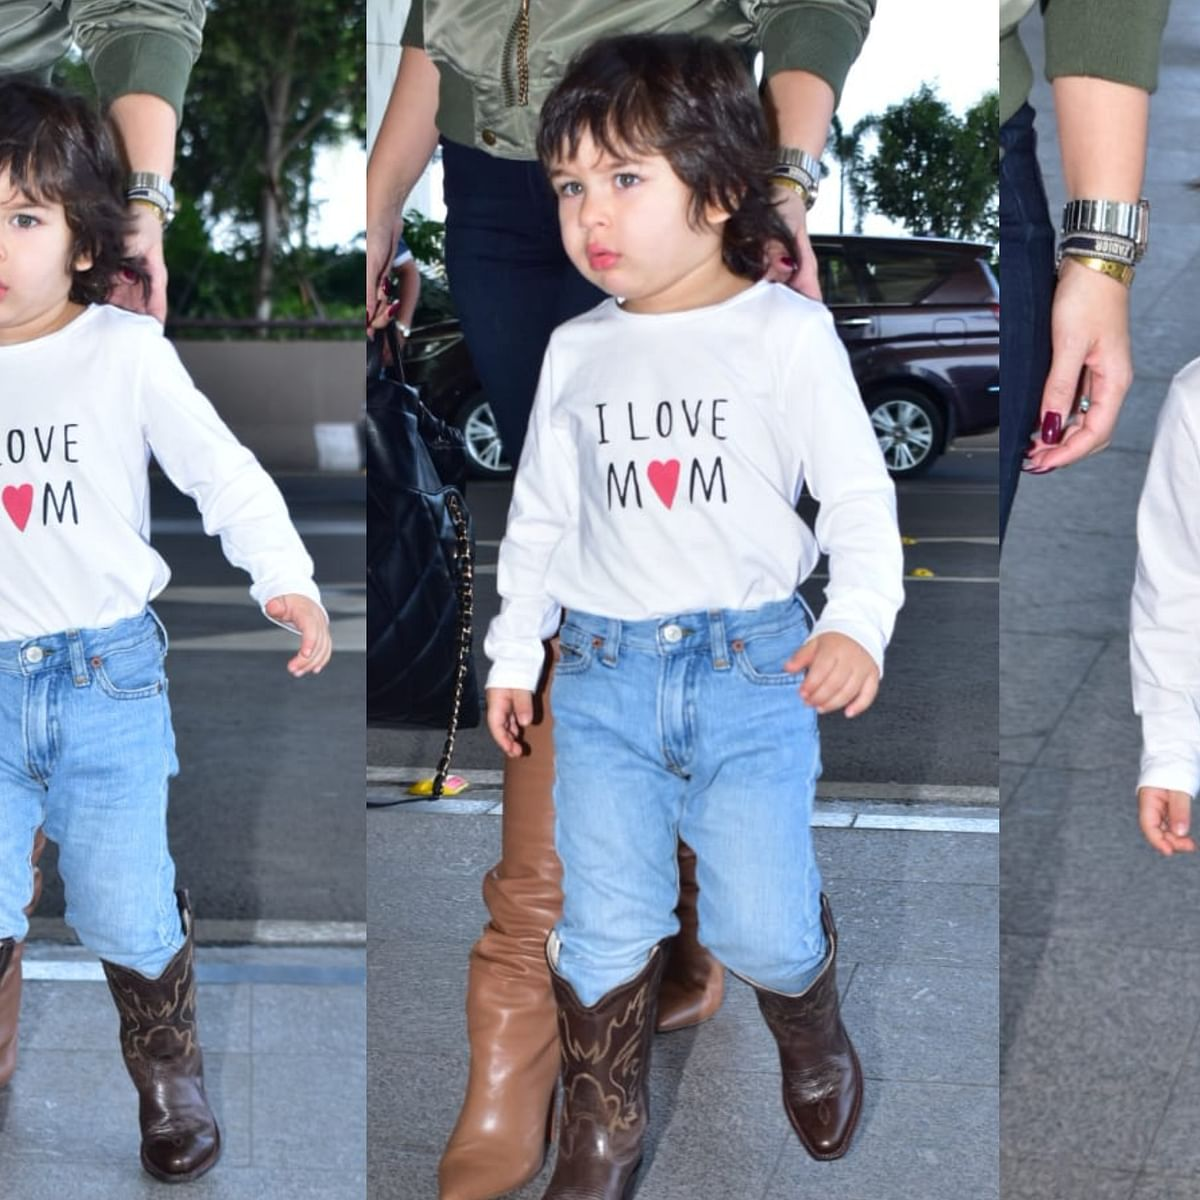 Kareena must be proud as Taimur sports 'I Love Mom' t-shirt on airport